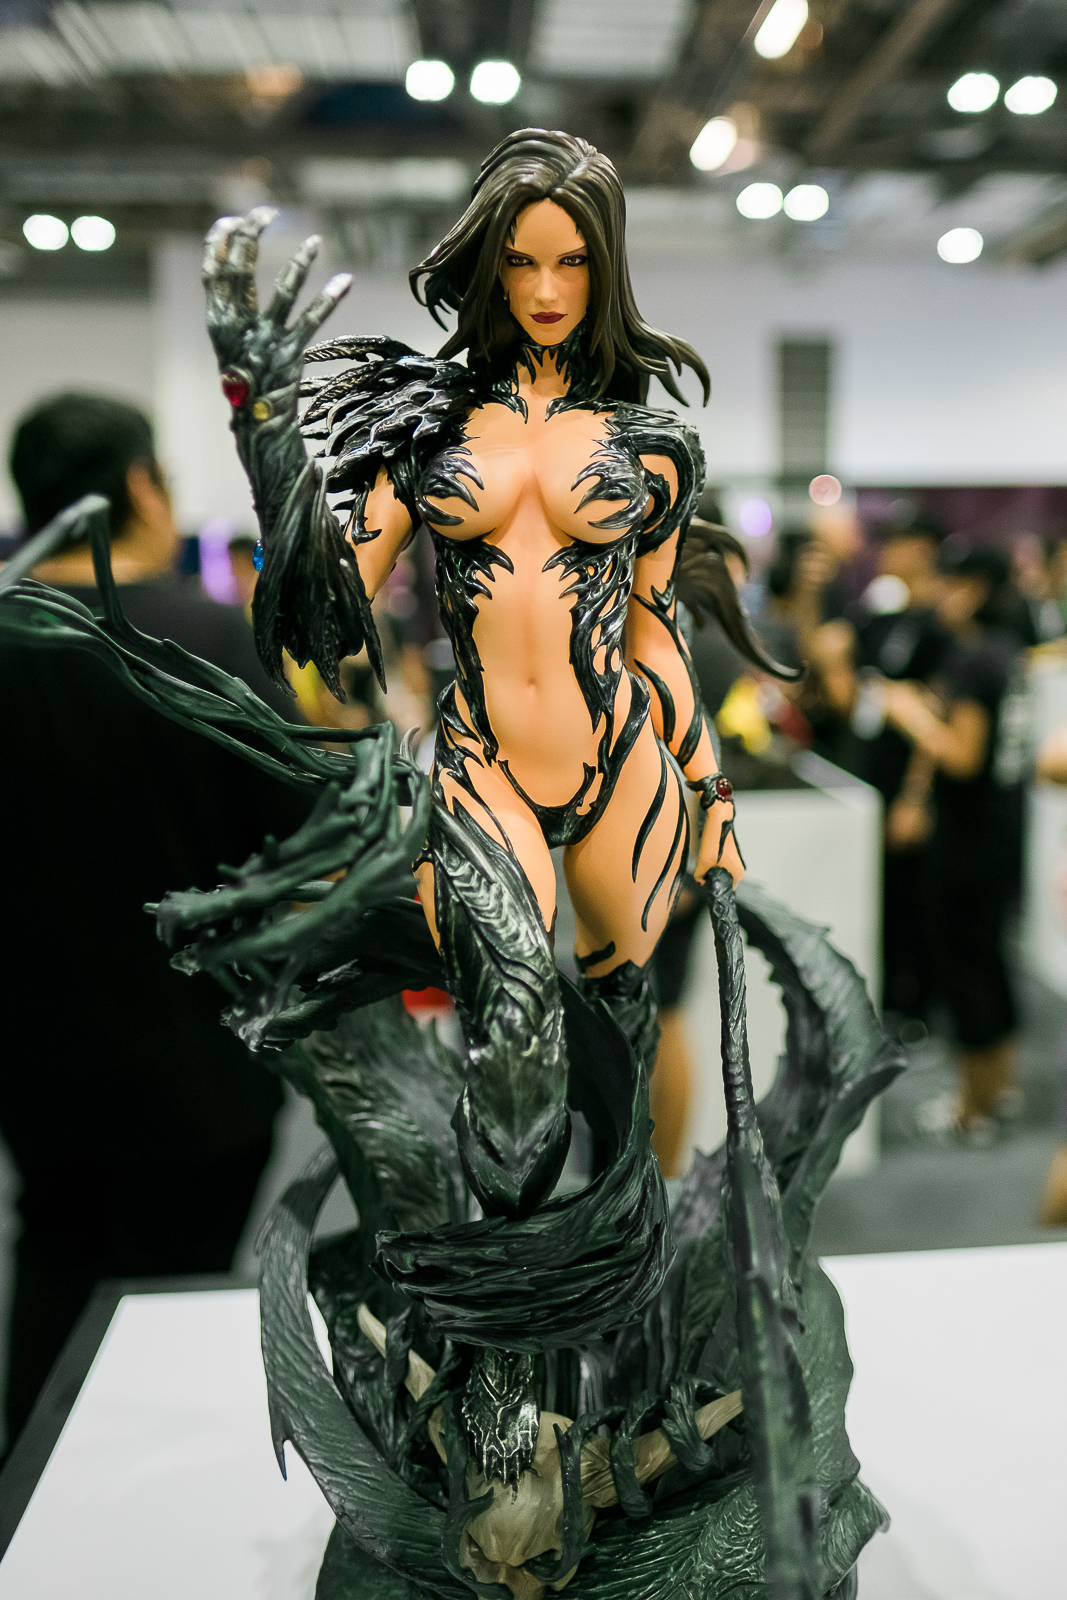 You can do anything to me, ol' Witchblade...